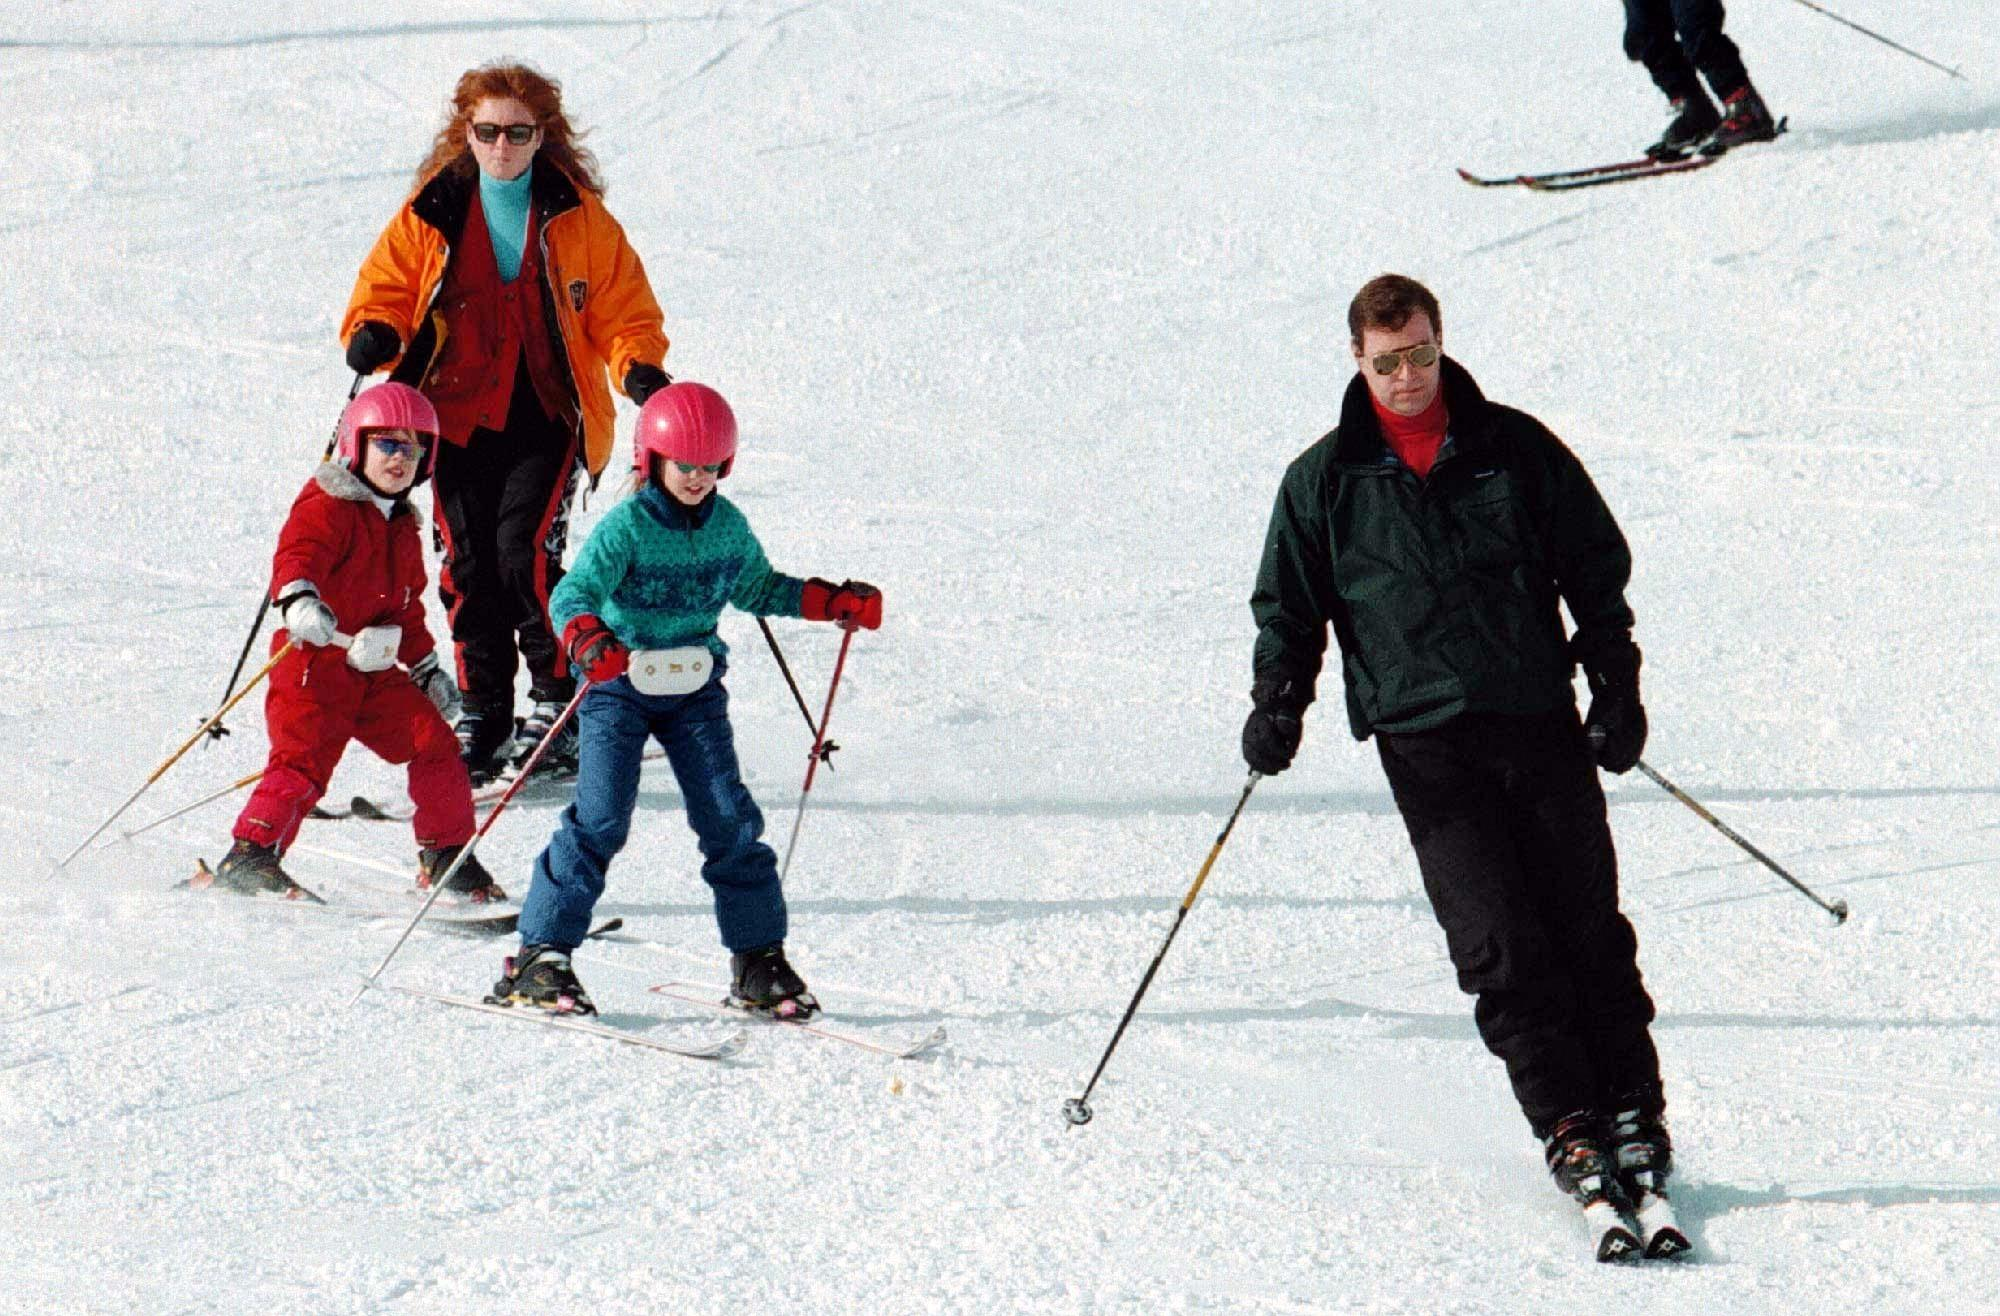 The Duke and Duchess of York with their daughter's Beatrice (right) and Eugenie on the Swiss ski slopes above, the ski resort of Verbier. Photo by John Stillwell/PA.